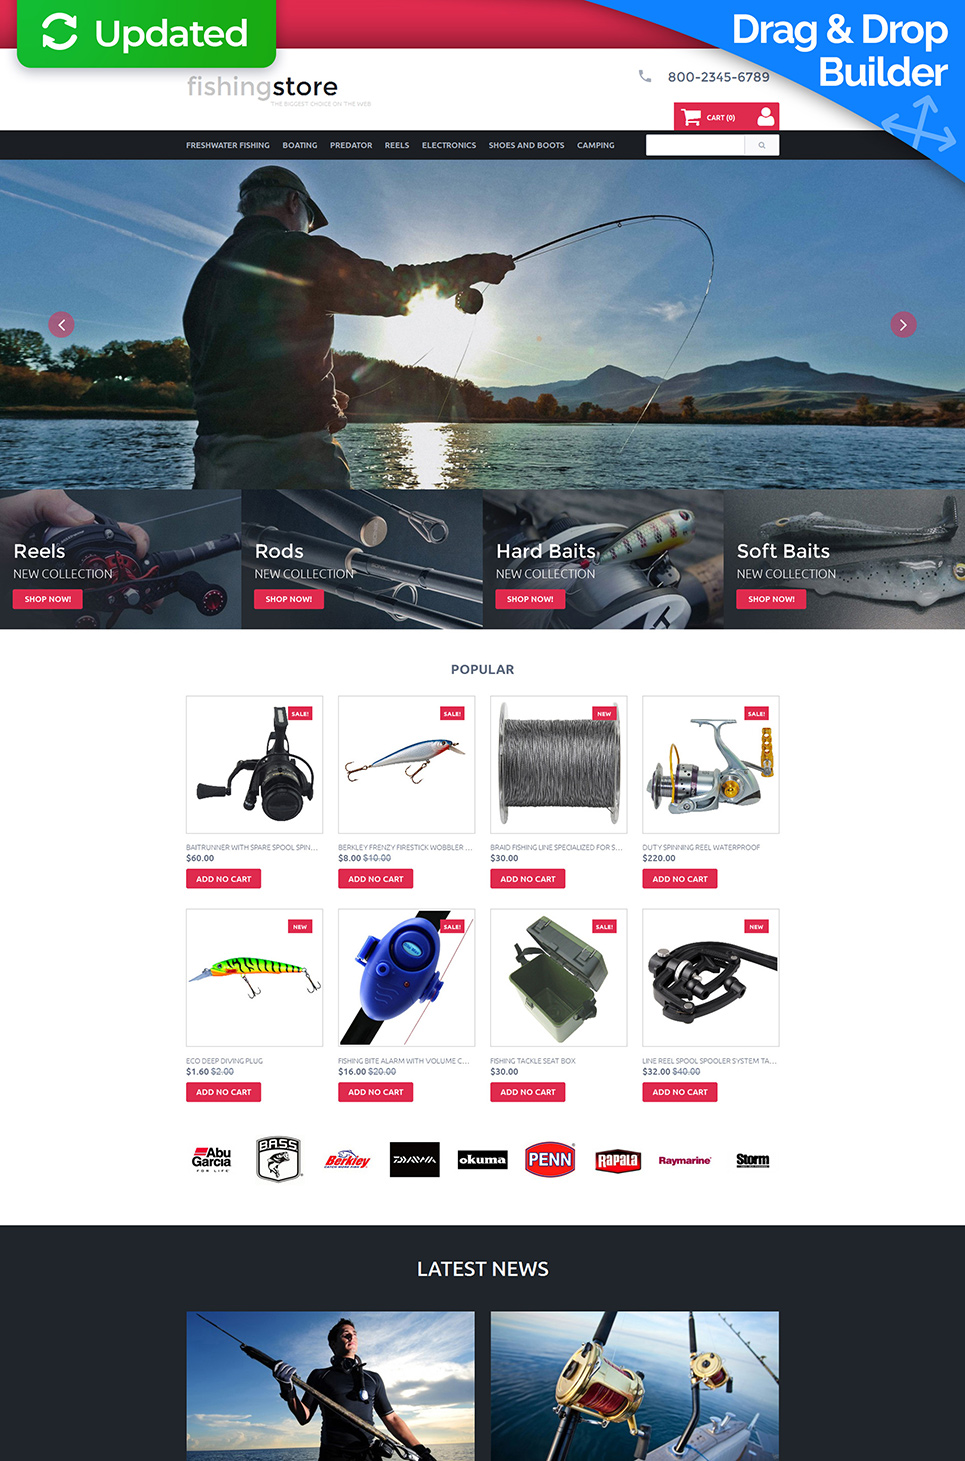 Fishing Store Ecommerce Website Template - image